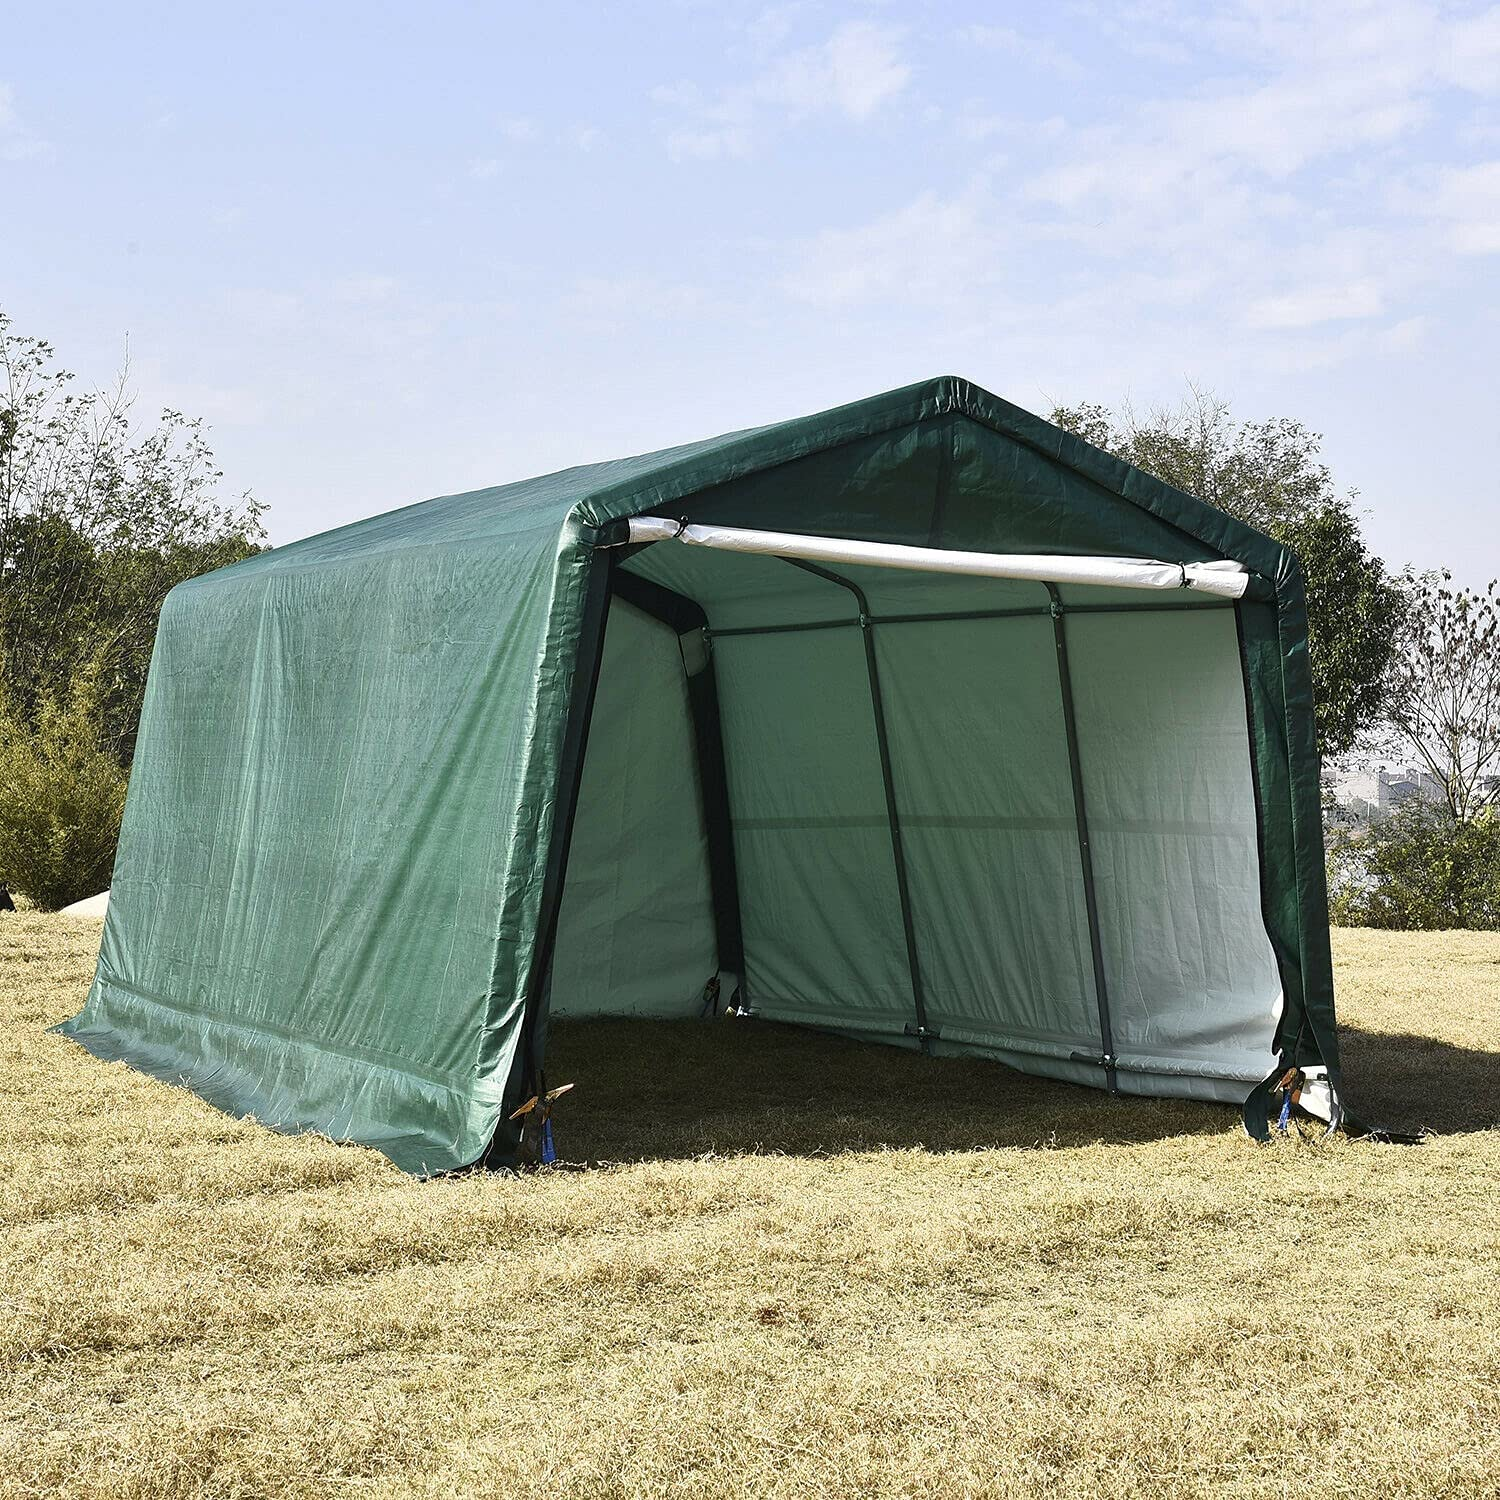 HUIJK Max Ranking TOP16 67% OFF Storage Sheds 10'x15'x8' FT Shed Te Carport Canopy